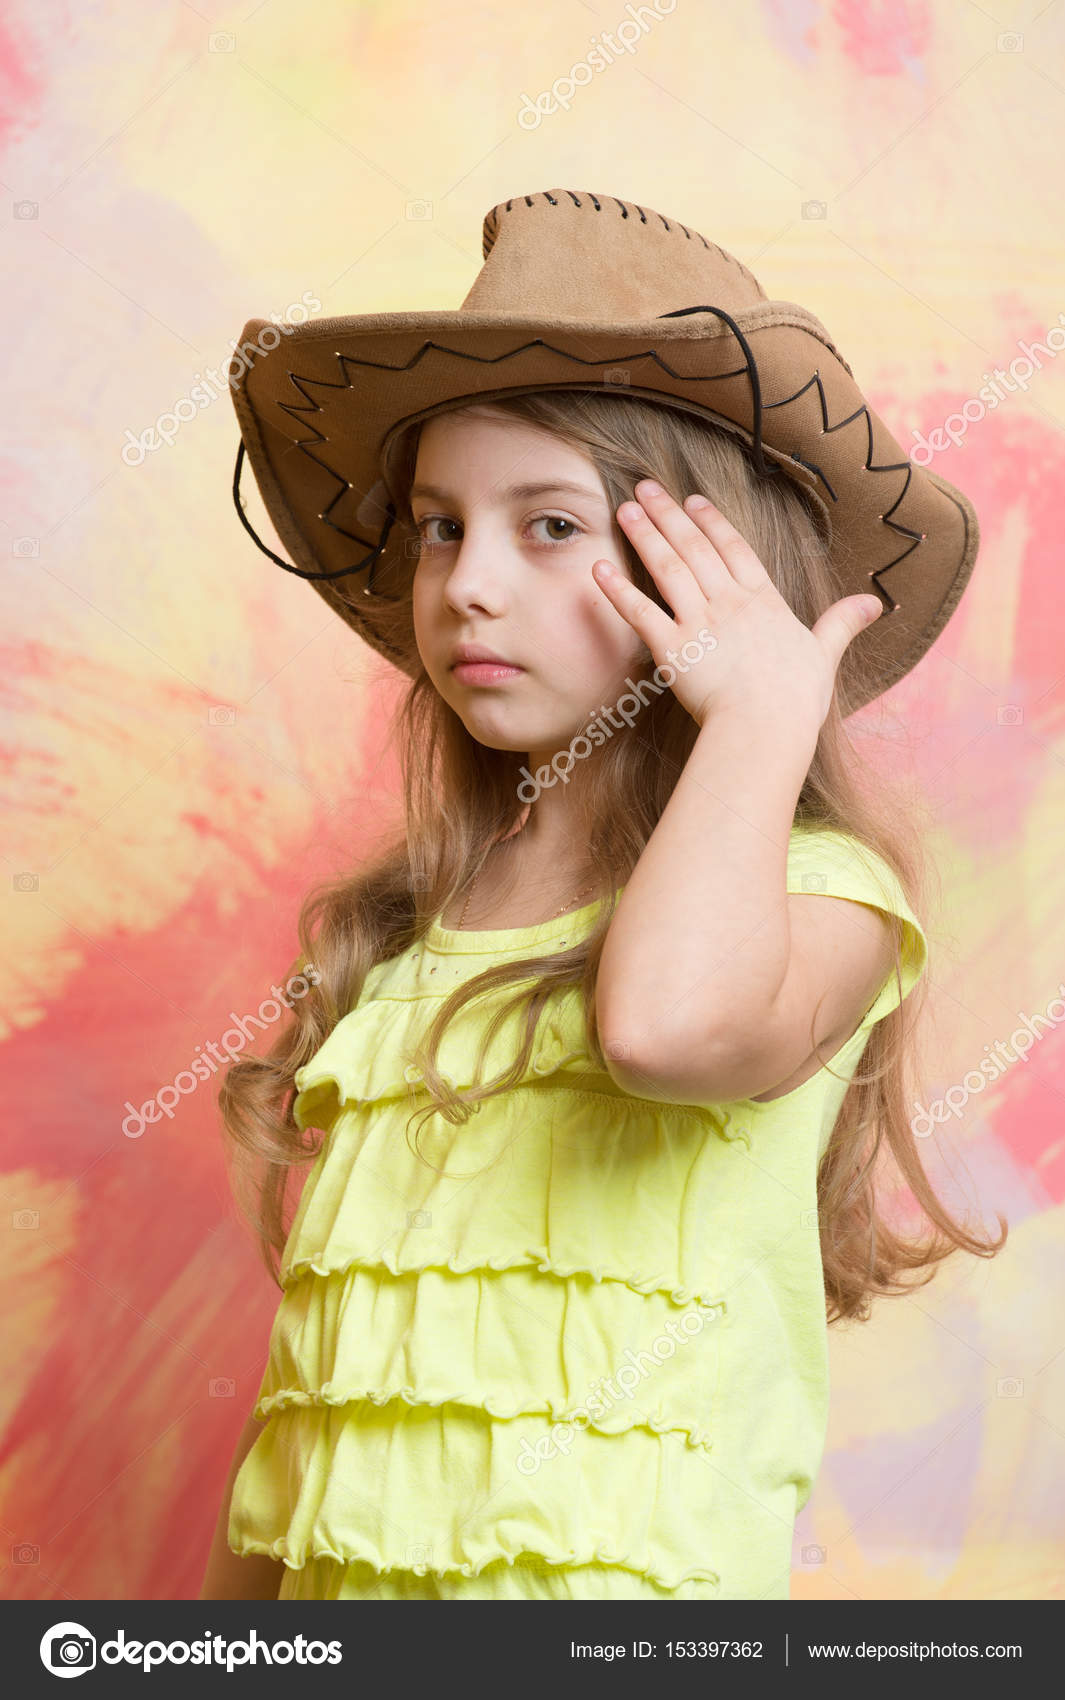 b49a31fba Adorable little girl with cute face in western cowboy hat — Stock ...